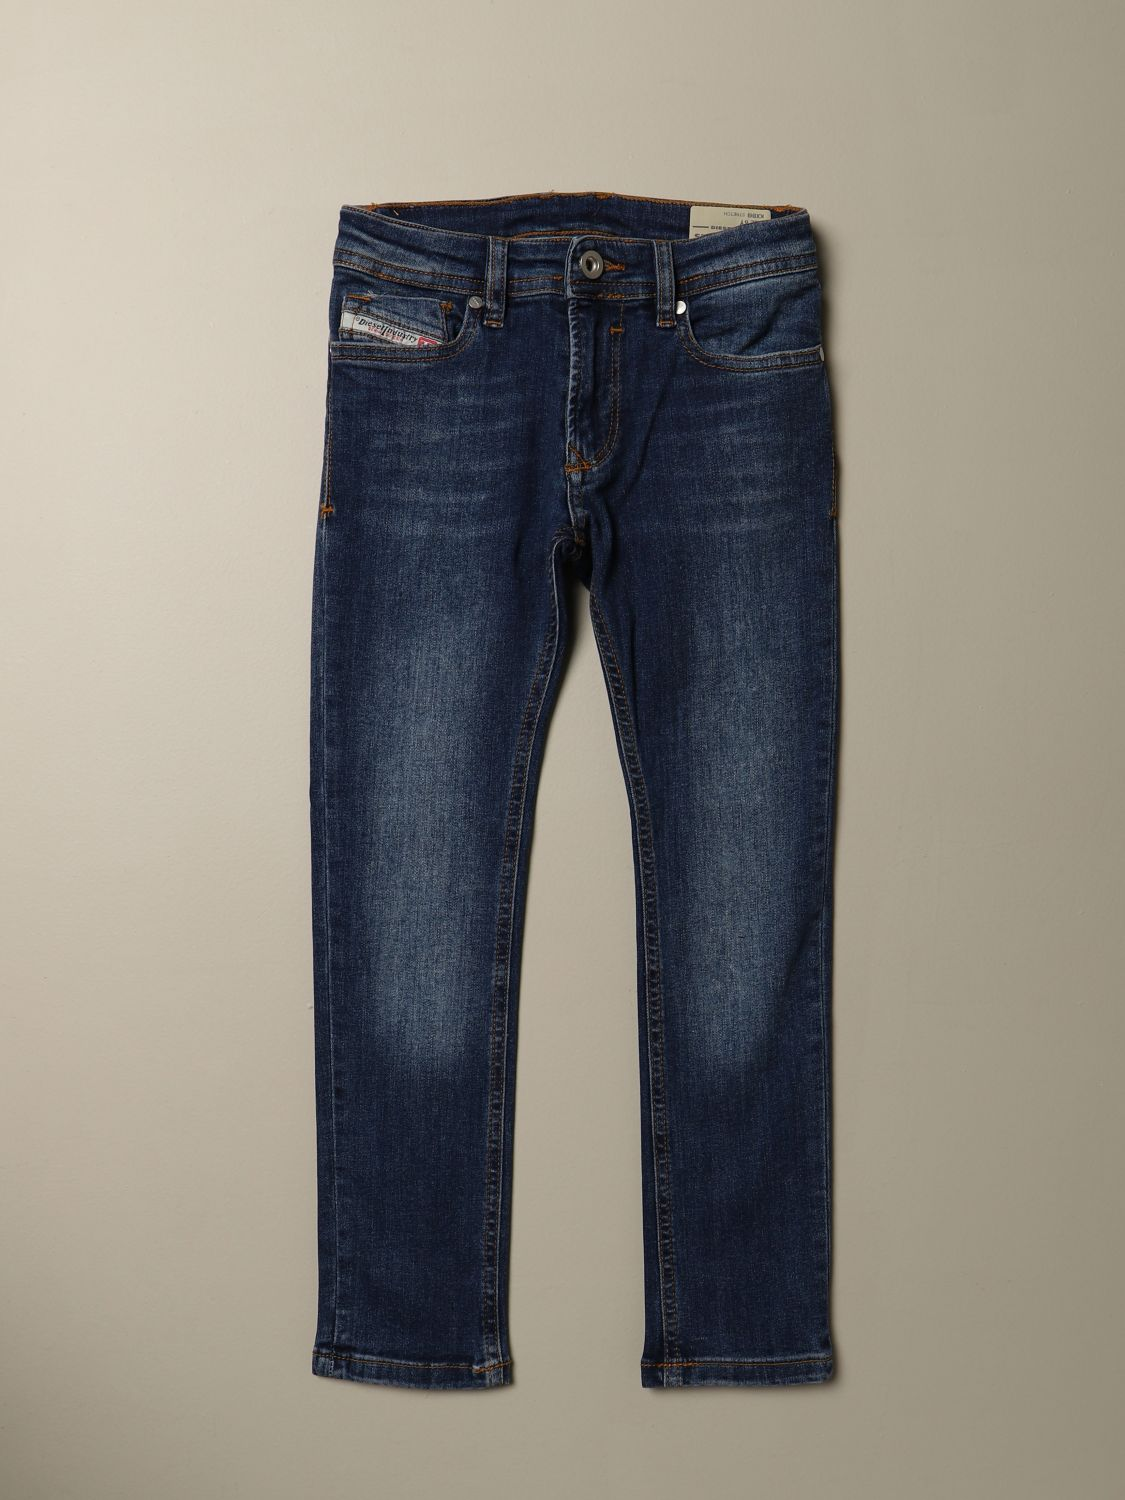 Jeans Diesel: Jeans Sleenker Diesel skinny fit in denim used denim 1